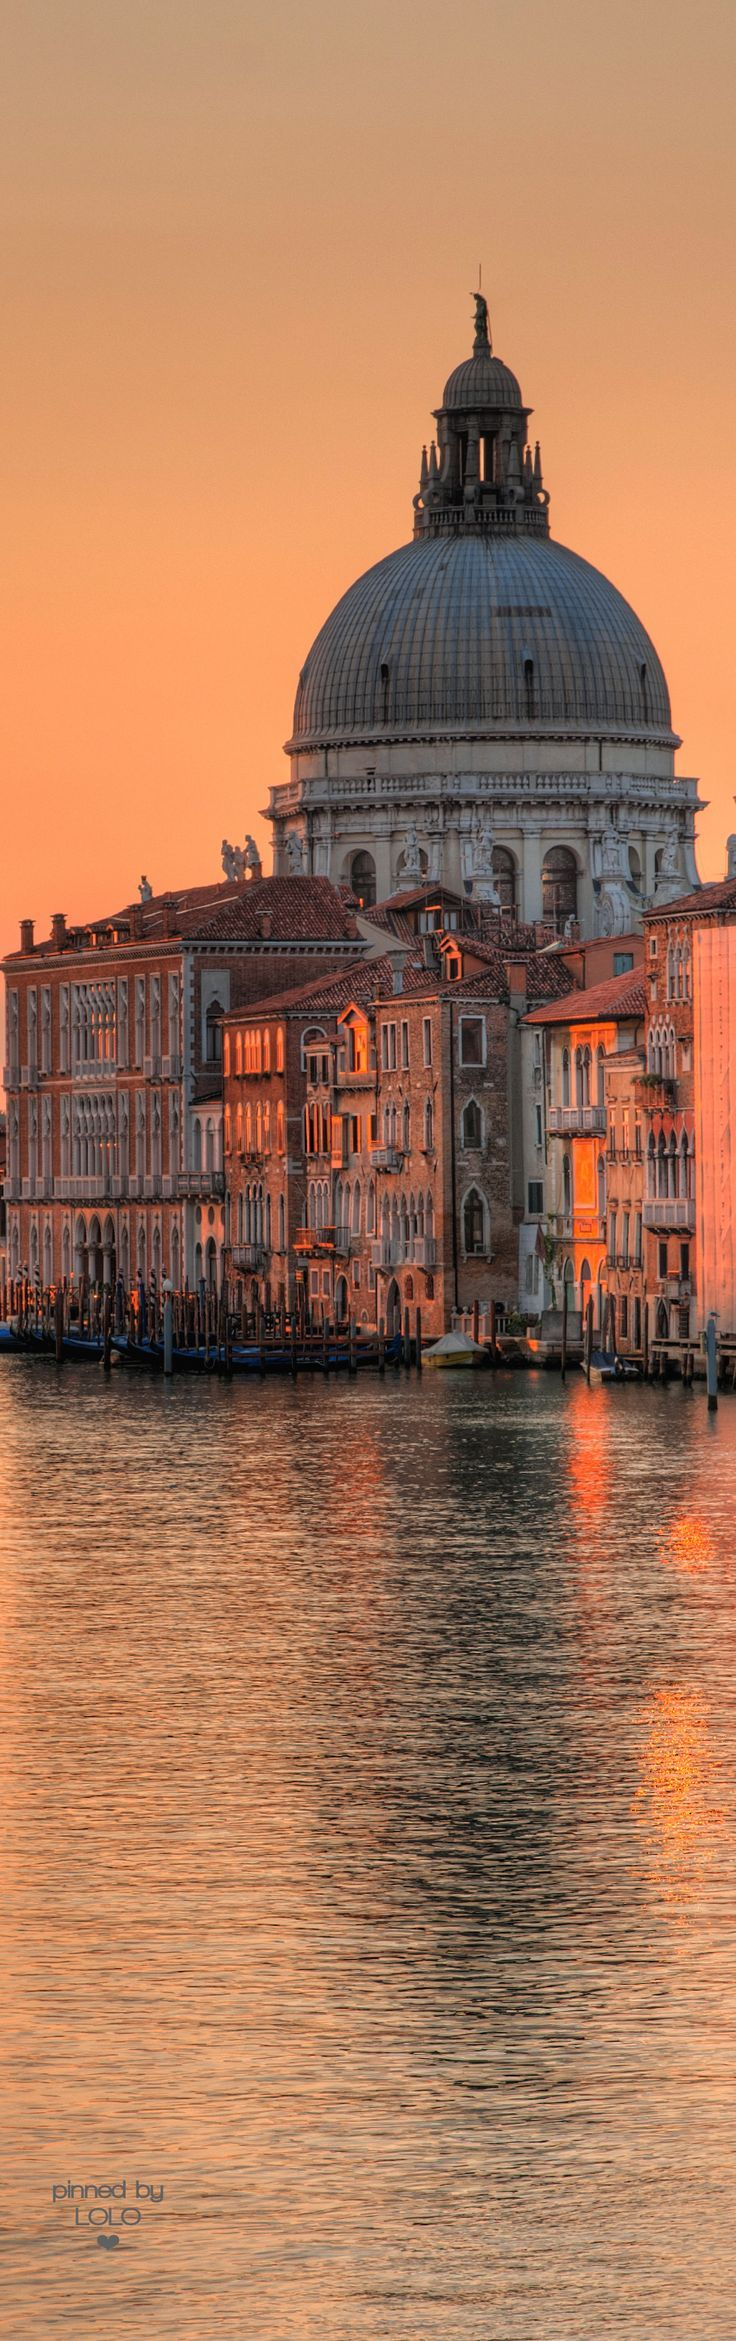 Sunrise at the Grand Canal and the Church of Santa Maria della Salute - Venice, Italy.